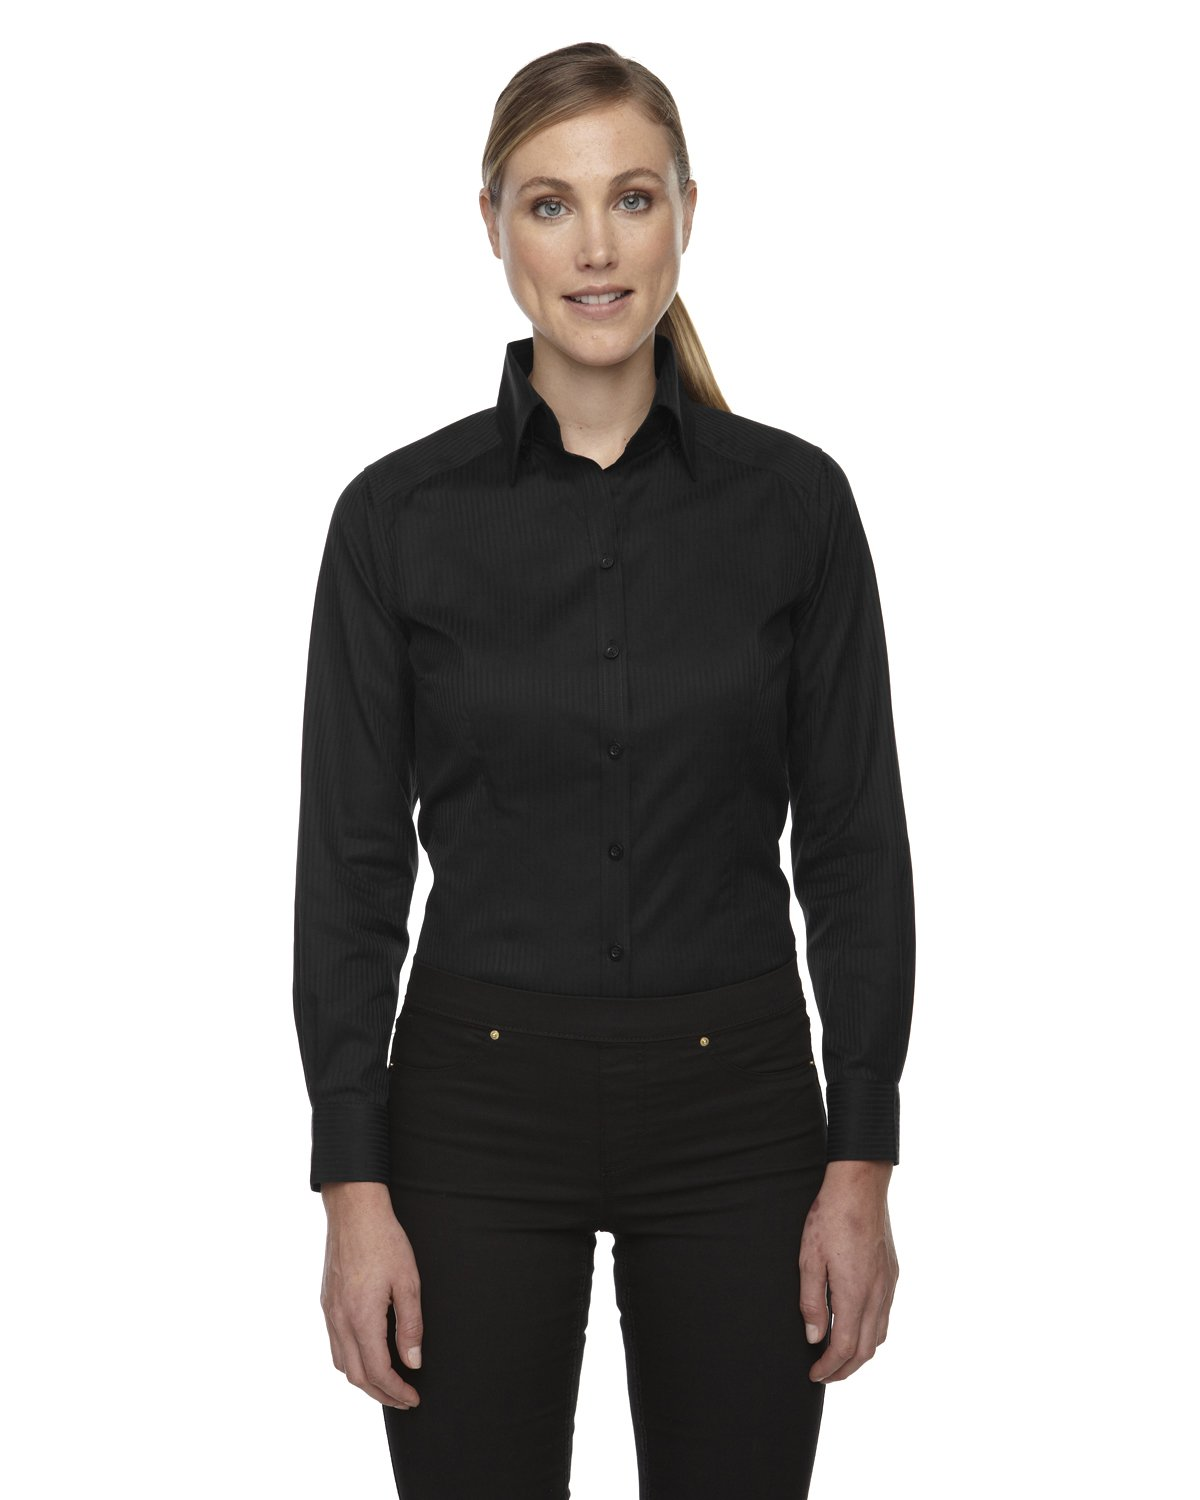 Ash City Ladies Jacquard Shirts (Medium, Black) by Ash City Apparel